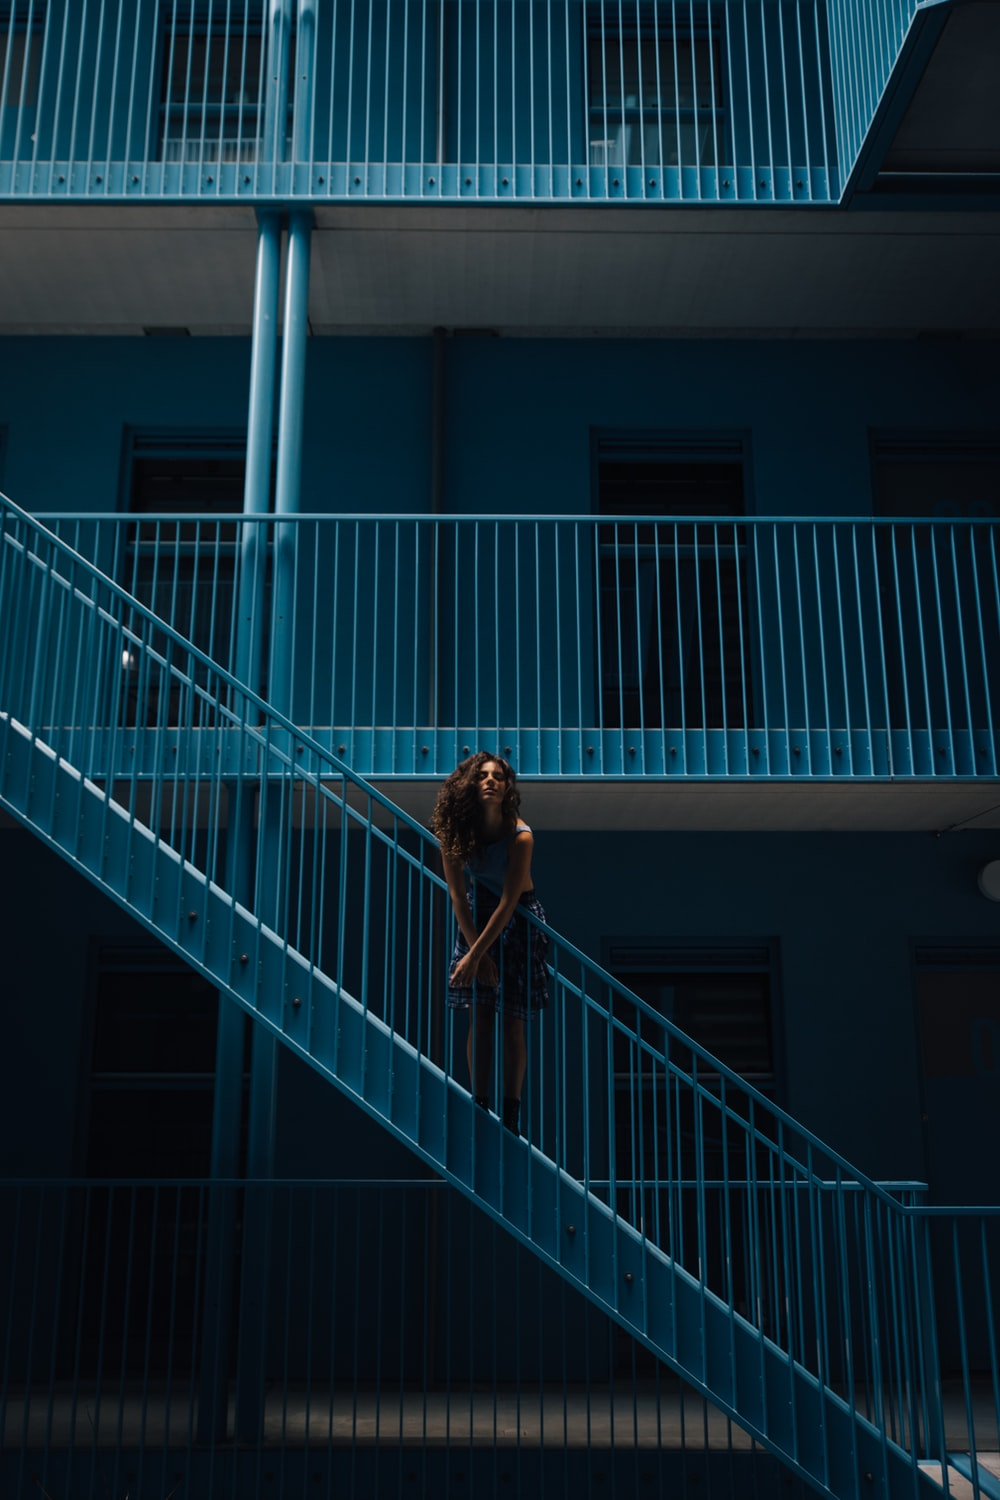 woman standing on stairs during daytime